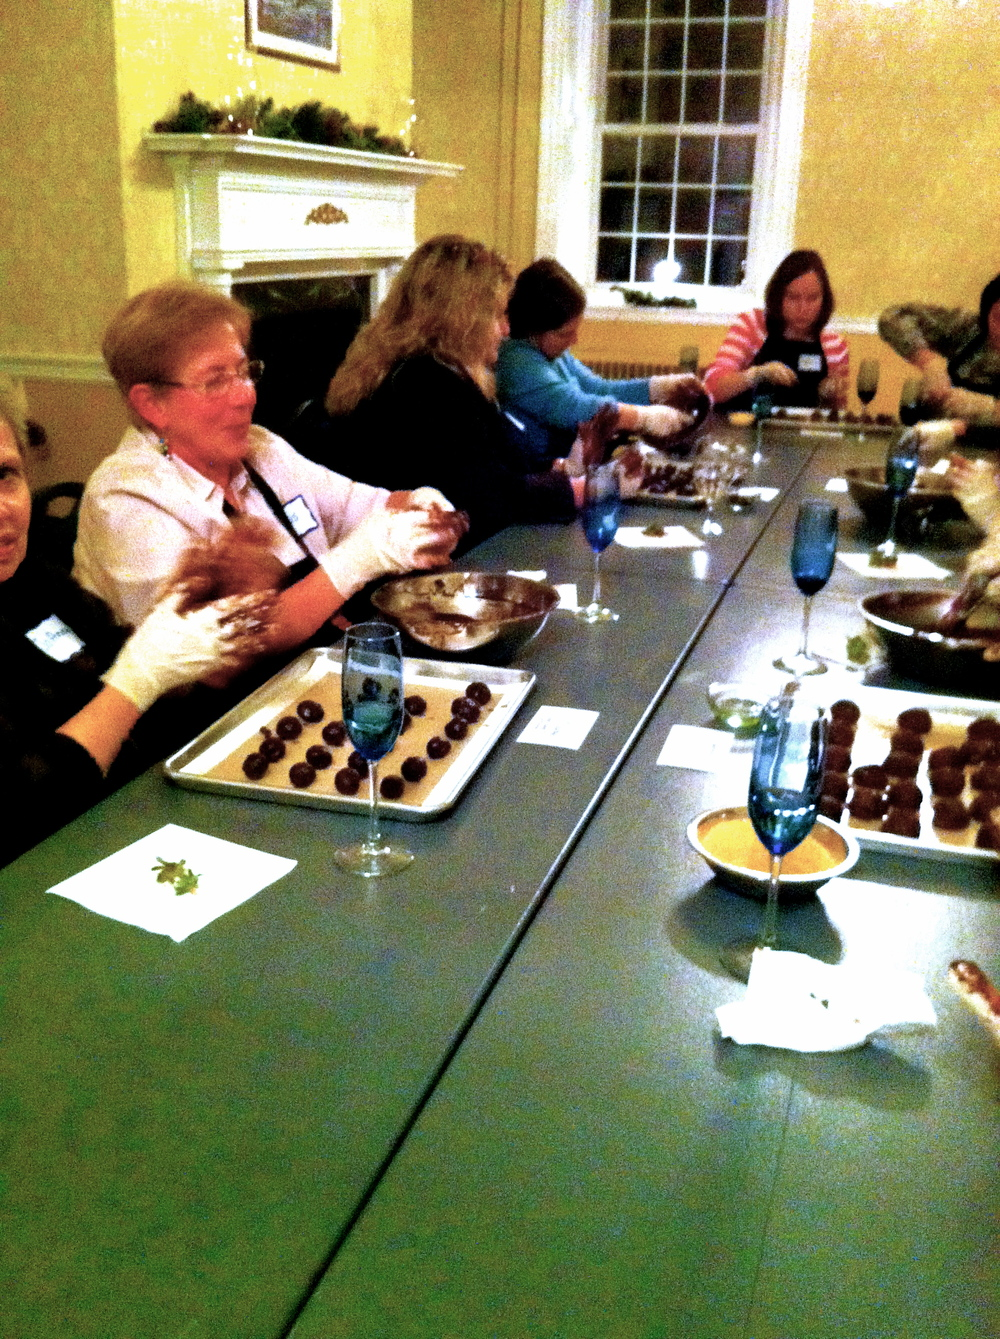 truffles making & champagne sipping culinary adventures!